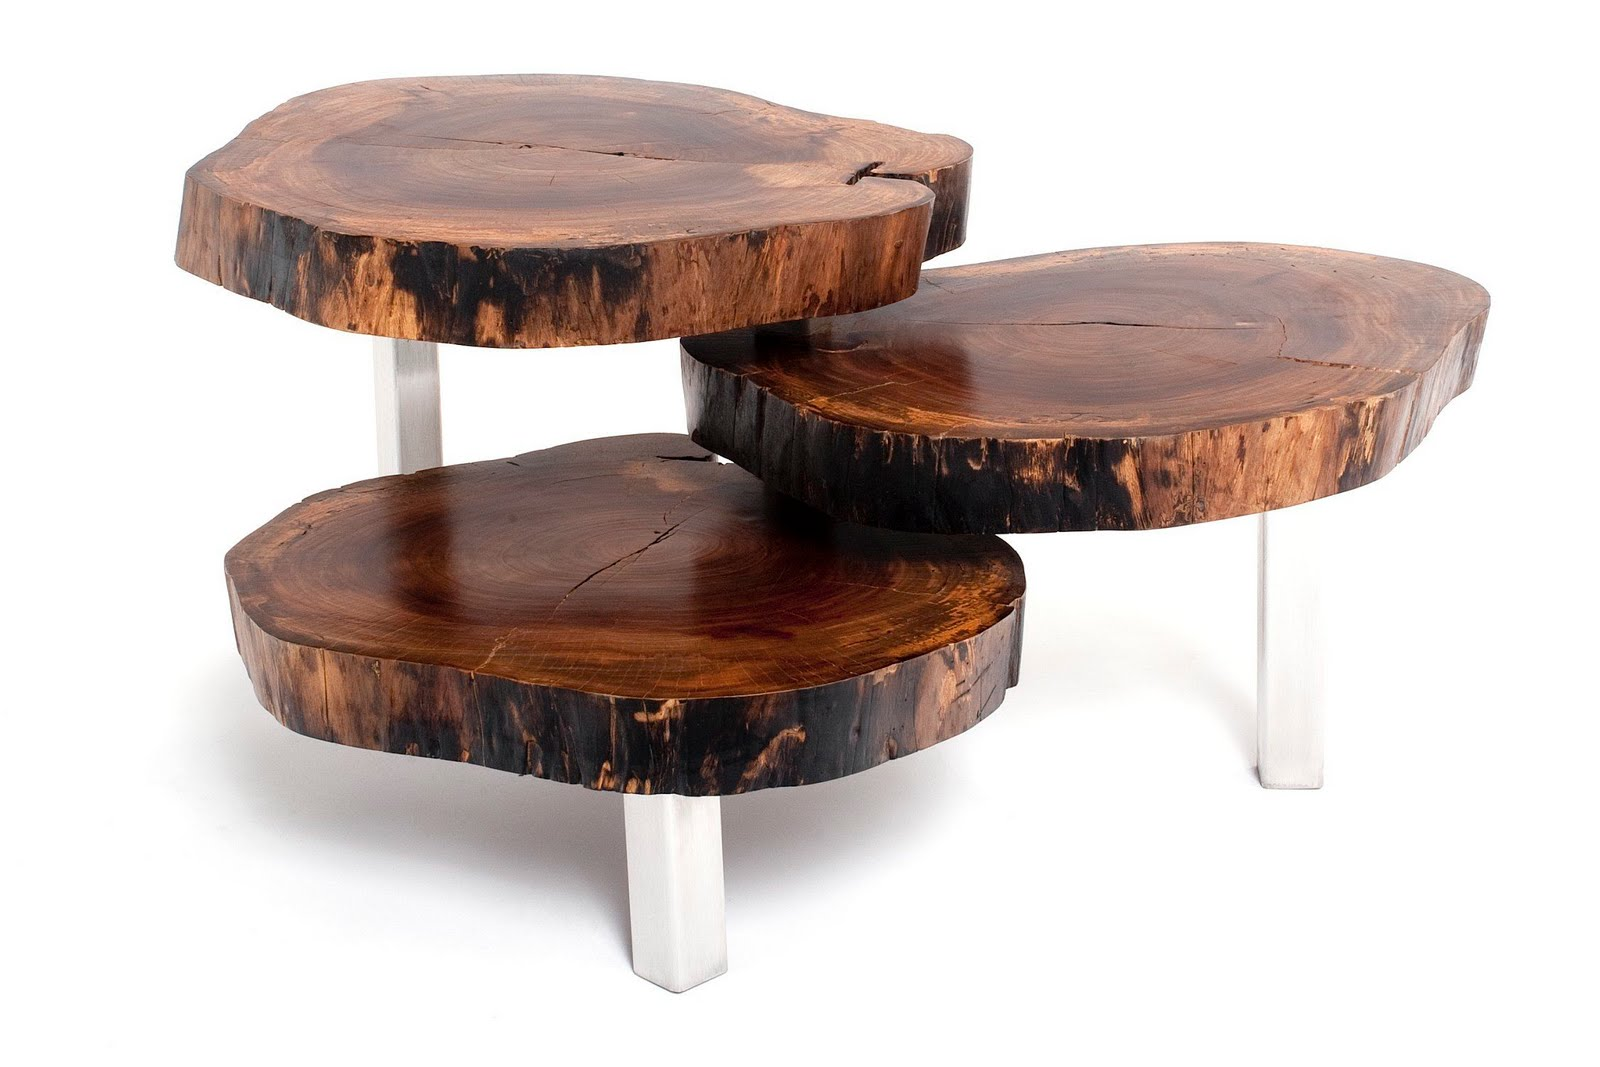 Eco friendly exotic wood tables globally gorgeous for Wooden furniture